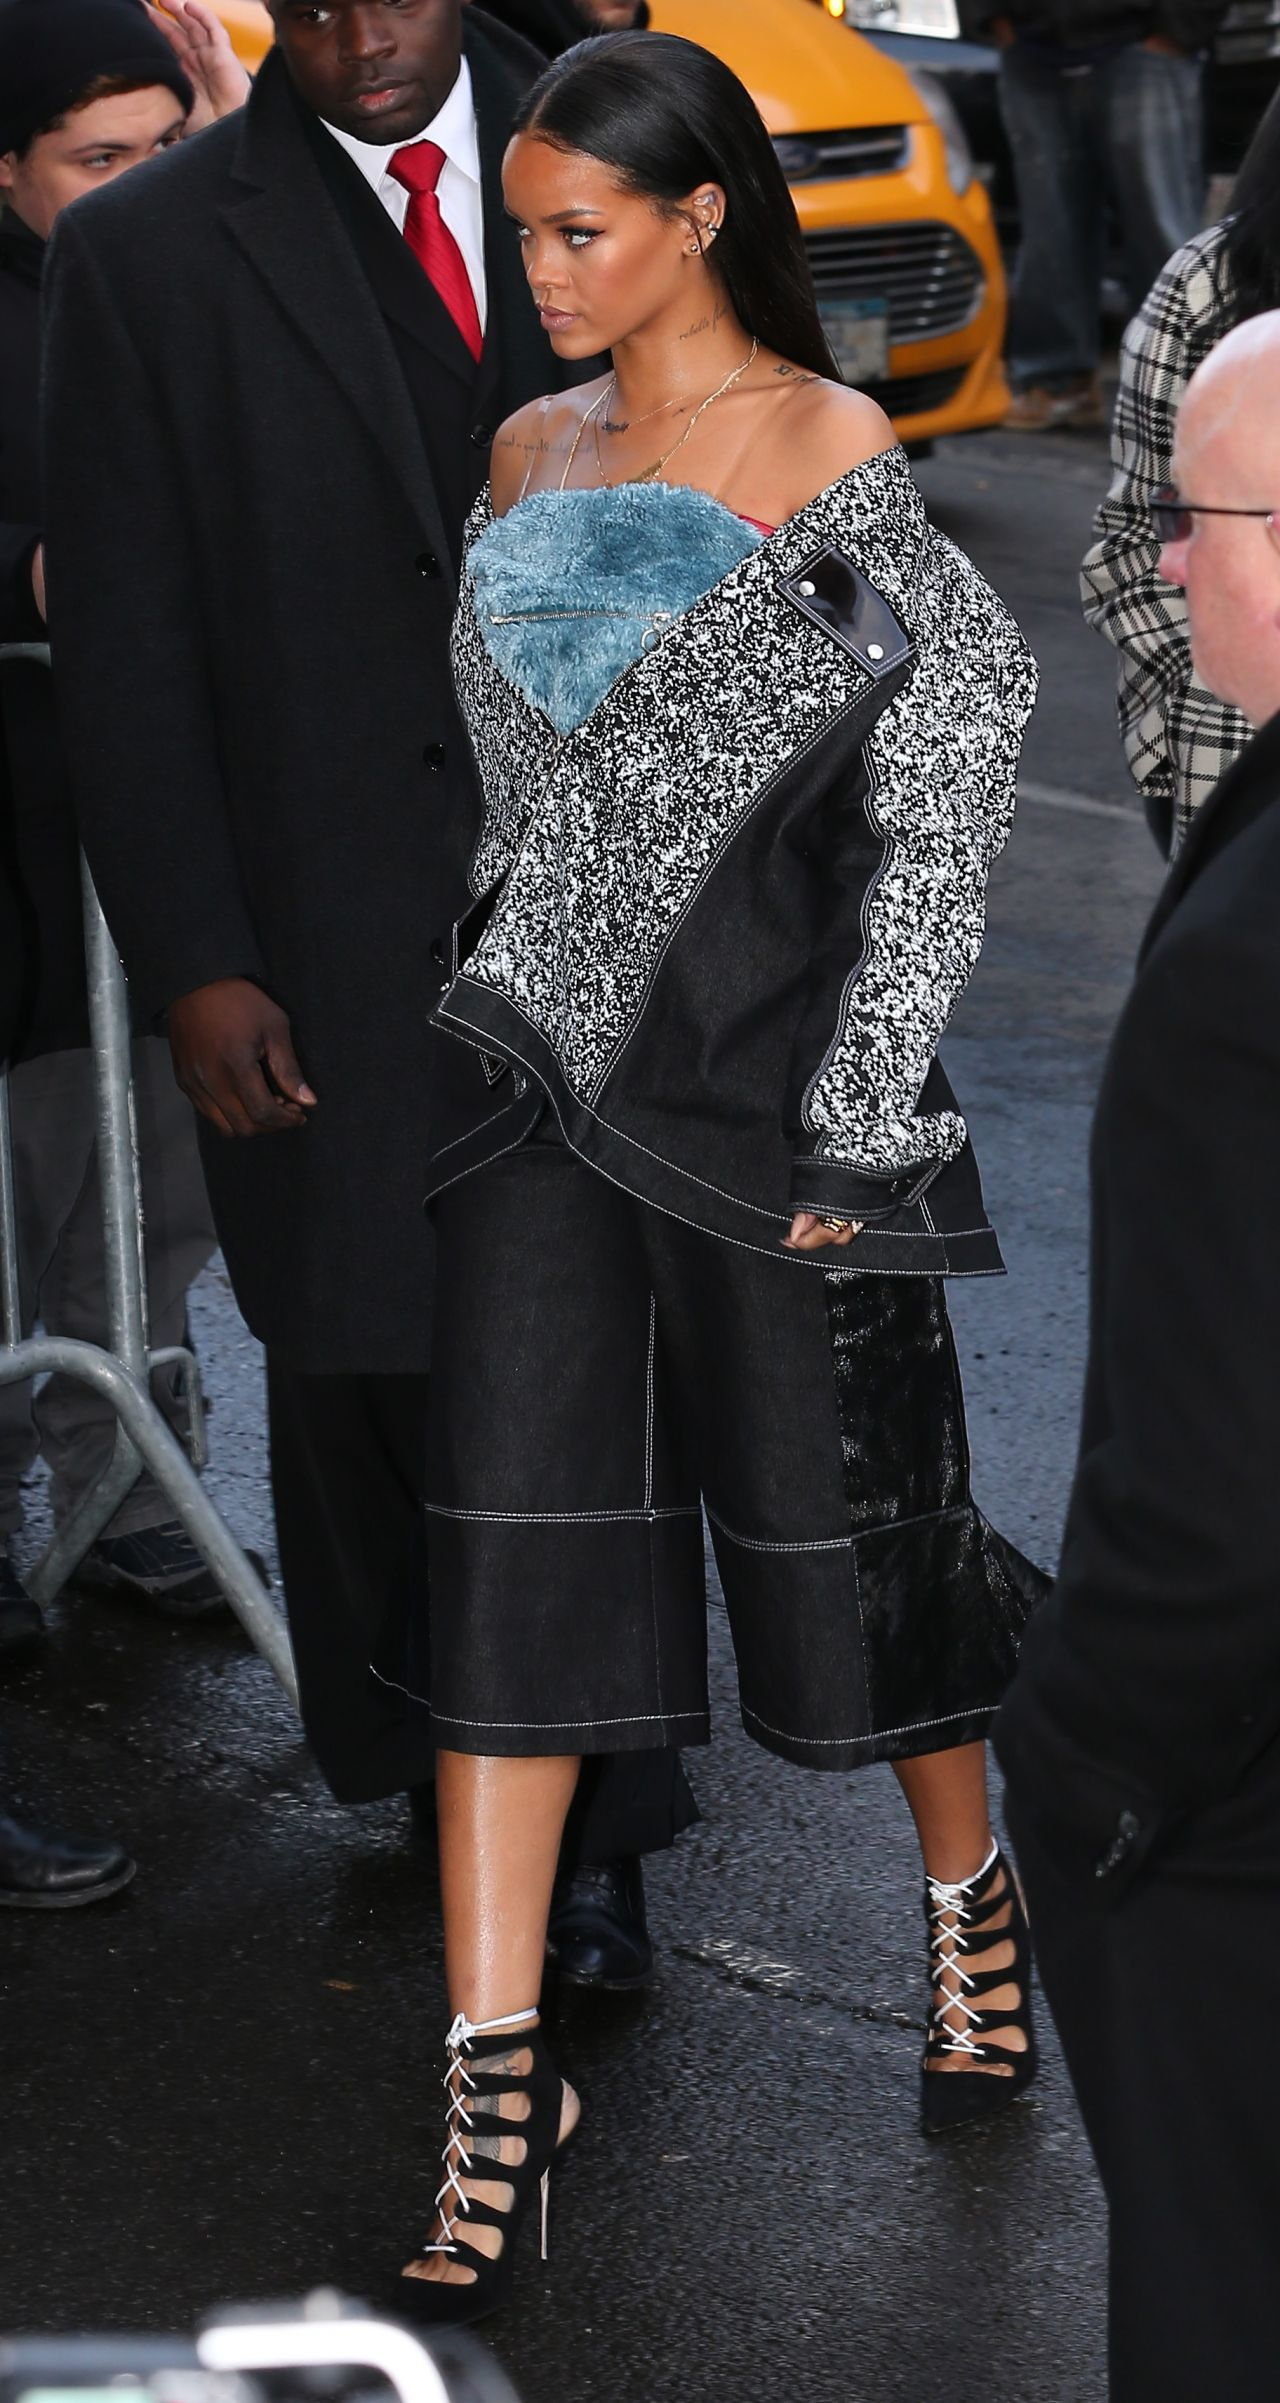 rihanna-fashion-arriving-at-kanye-west-s-fashion-show-in-new-york-city_1